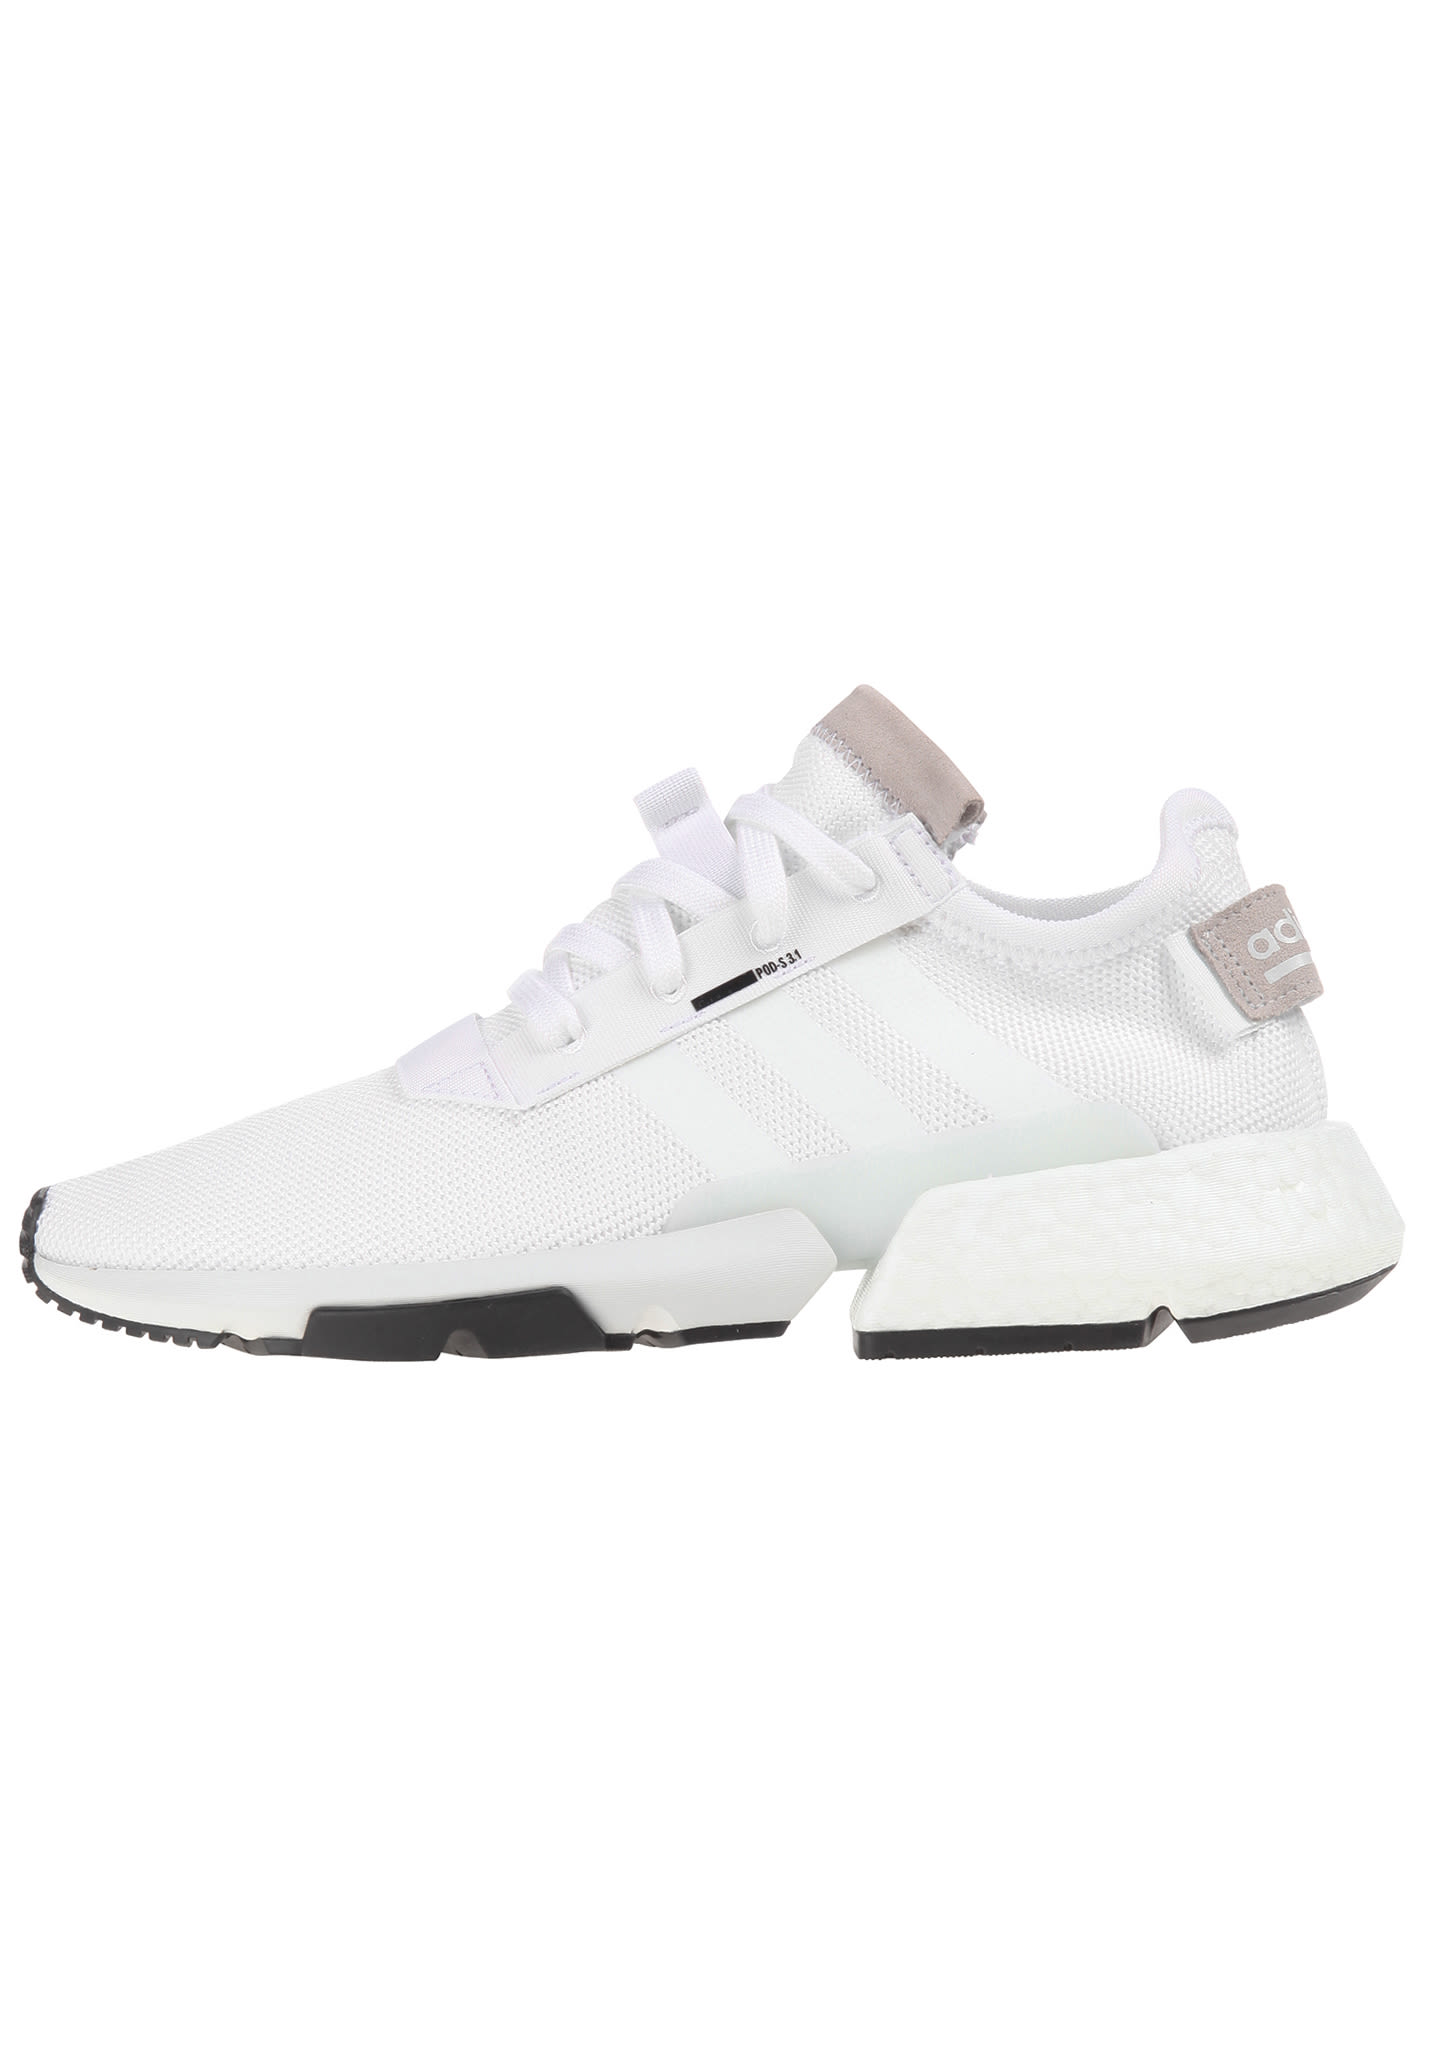 133f8e24d8cb12 ADIDAS ORIGINALS POD-S3.1 - Sneakers for Men - White - Planet Sports